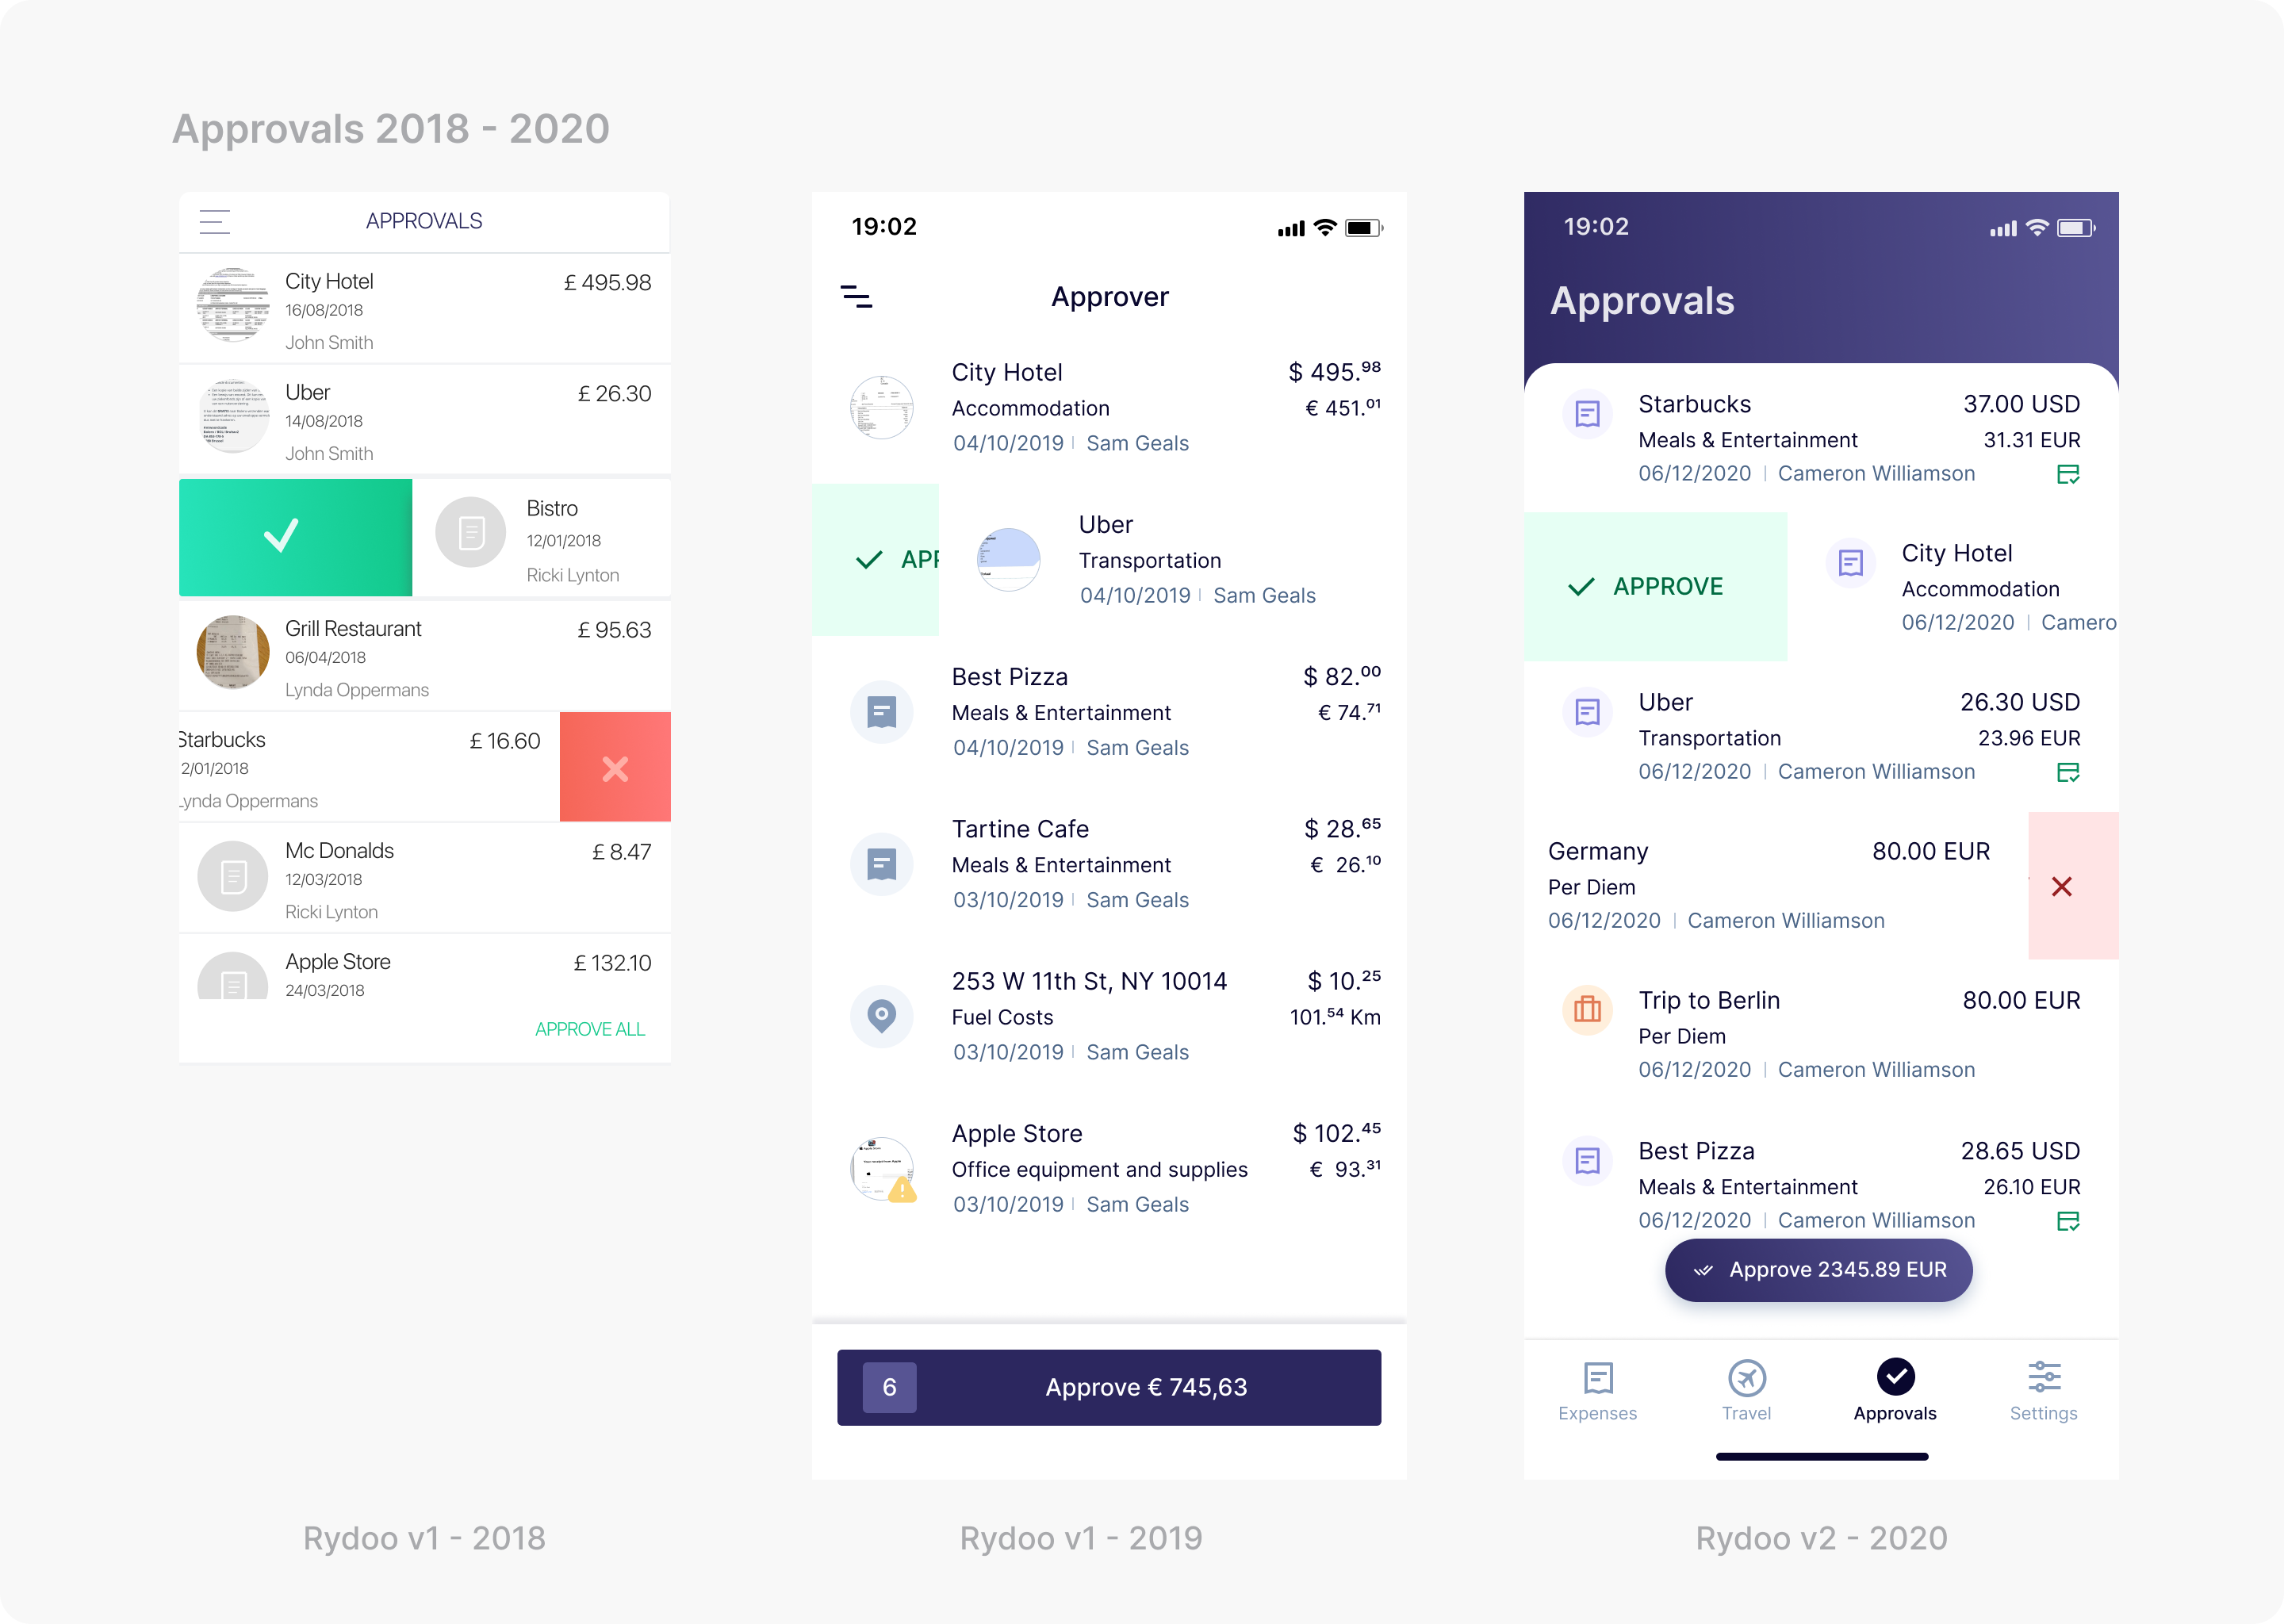 Three mobile screenshots showcasing approvals from 2018 to 2020